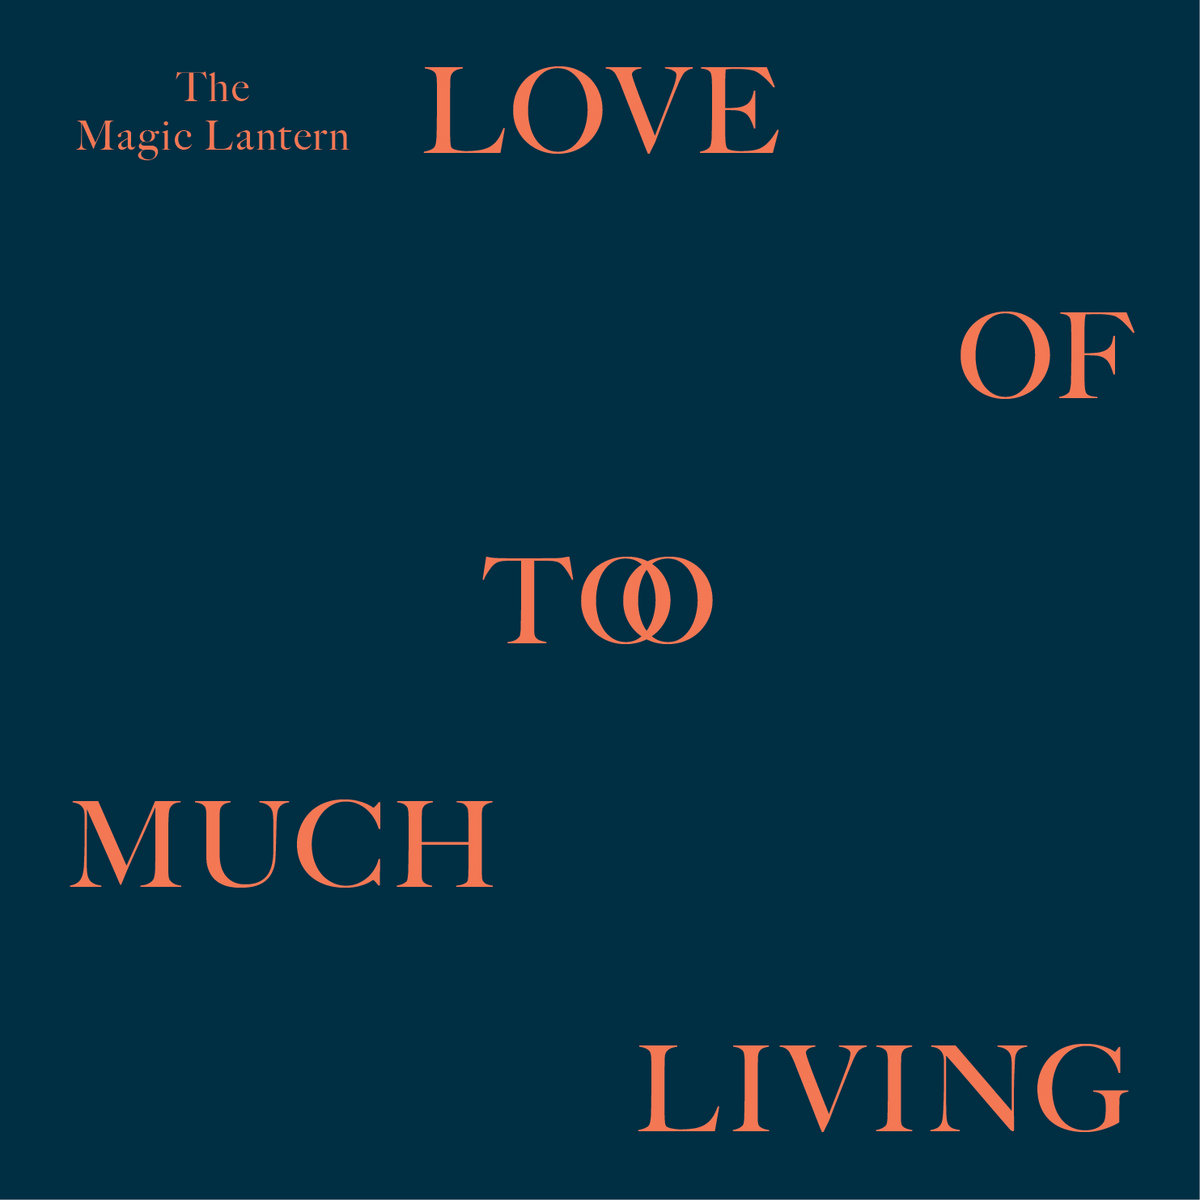 7fdc81623dd5c Stitches. from Love Of Too Much Living (2014) - Album by The Magic Lantern